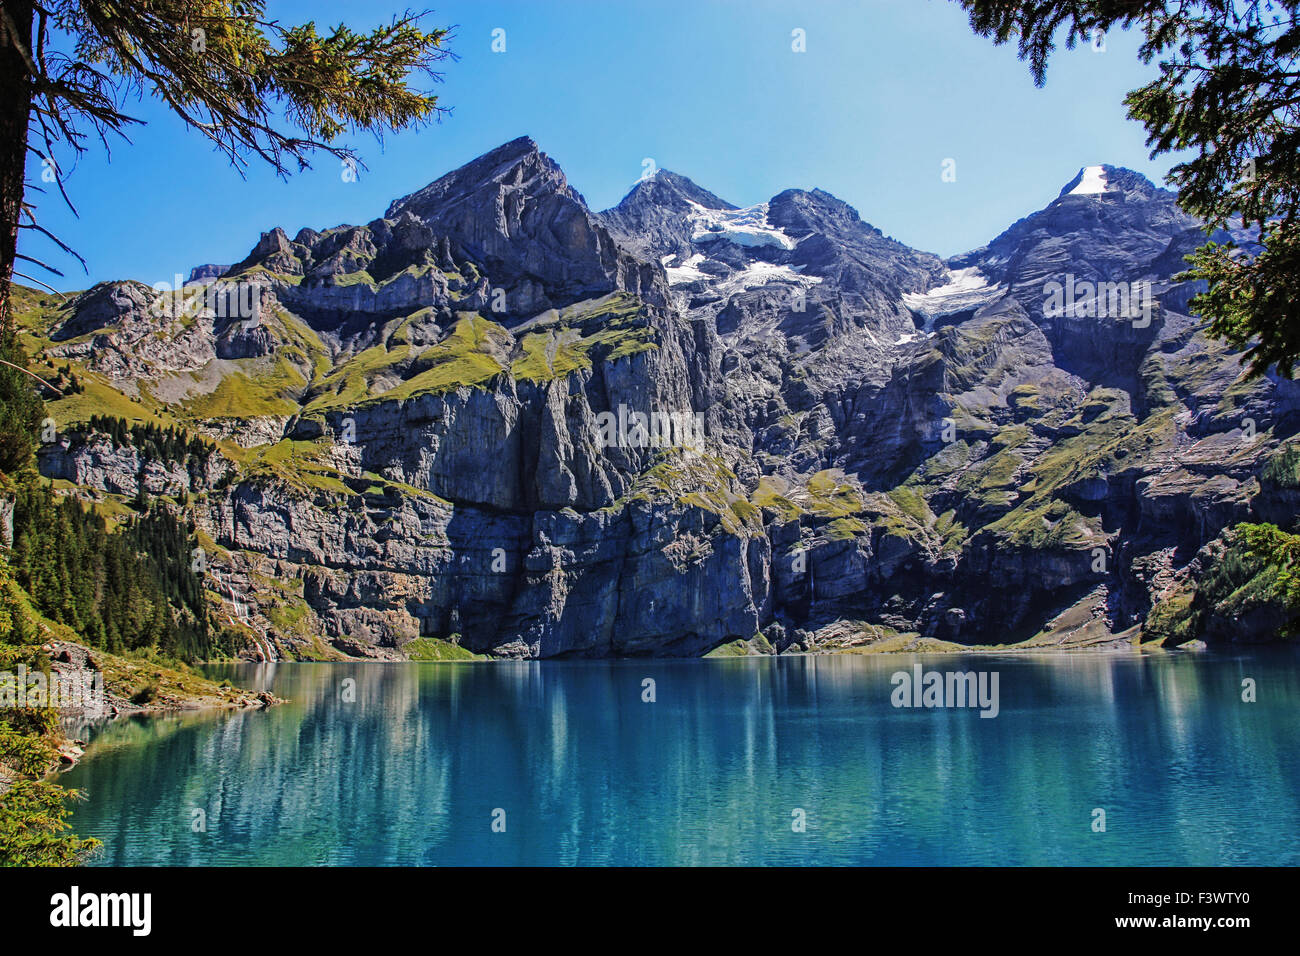 swiss alps - Stock Image